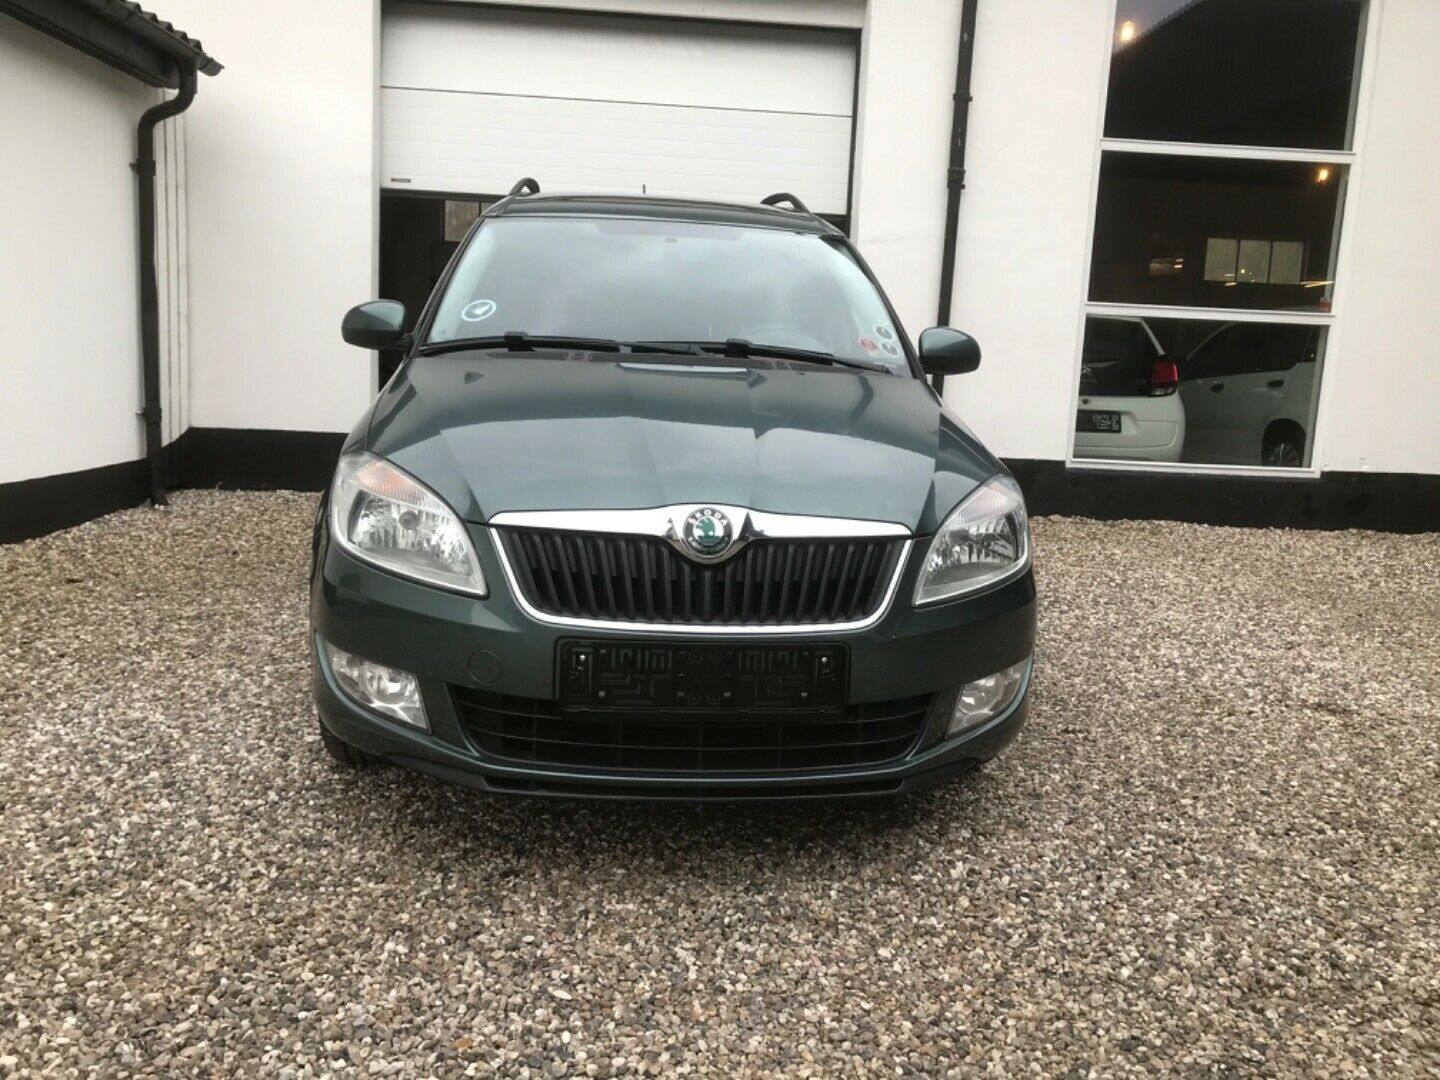 Skoda Roomster 1,2 TSi 105 Ambition+ GreenTec 5d